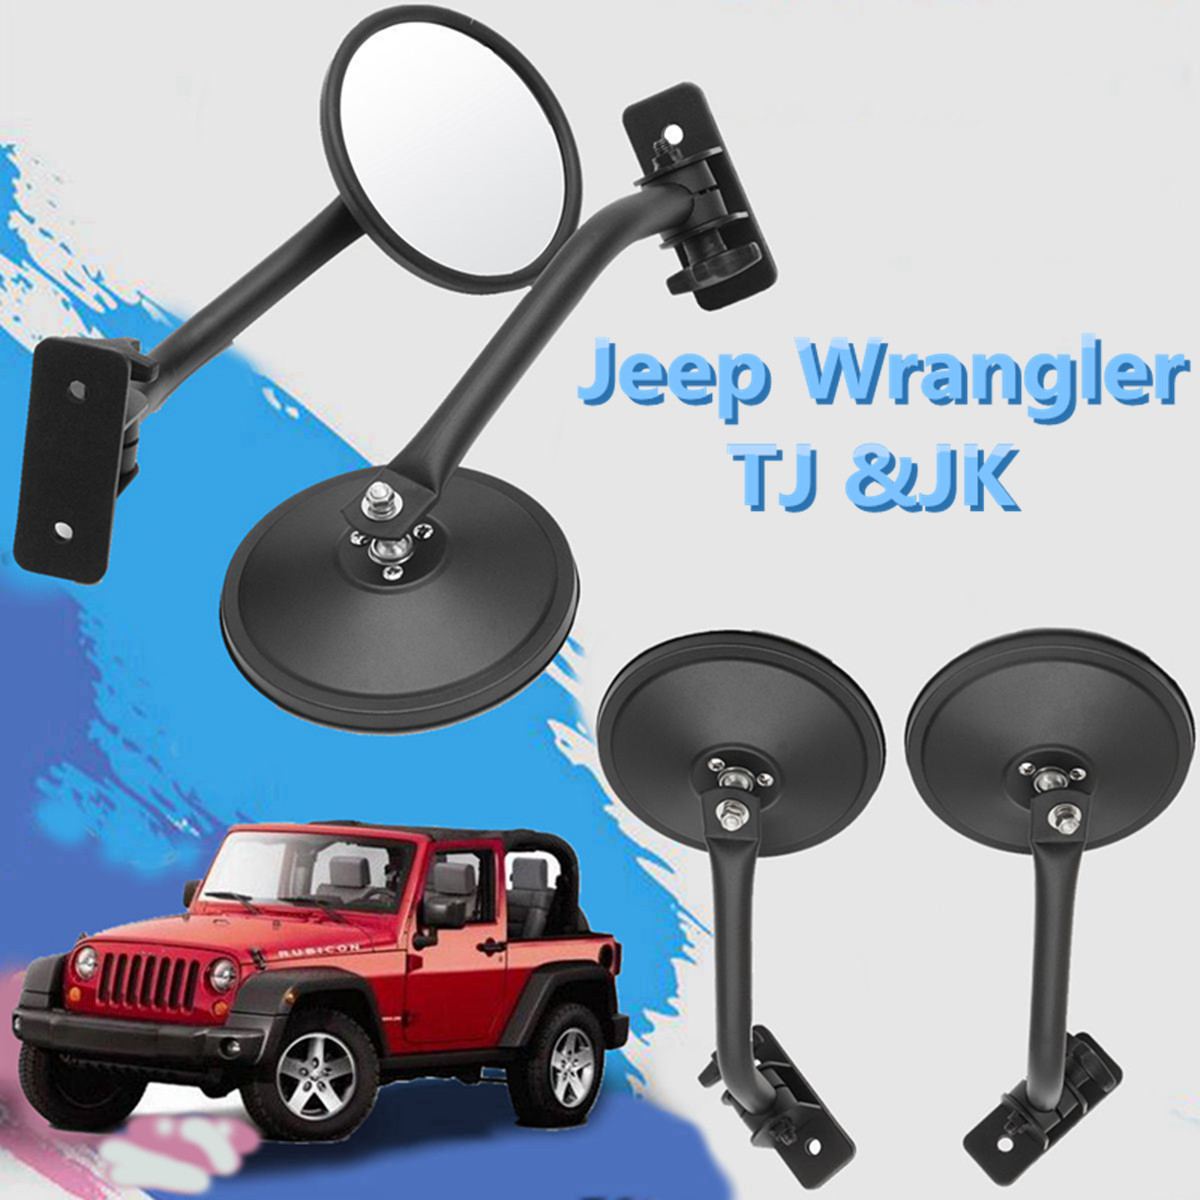 Pair Car Rear View Mirror Side Rearview Mirrors For Jeep for Wrangler TJ&JK 1997-2015 Quick ReleasePair Car Rear View Mirror Side Rearview Mirrors For Jeep for Wrangler TJ&JK 1997-2015 Quick Release